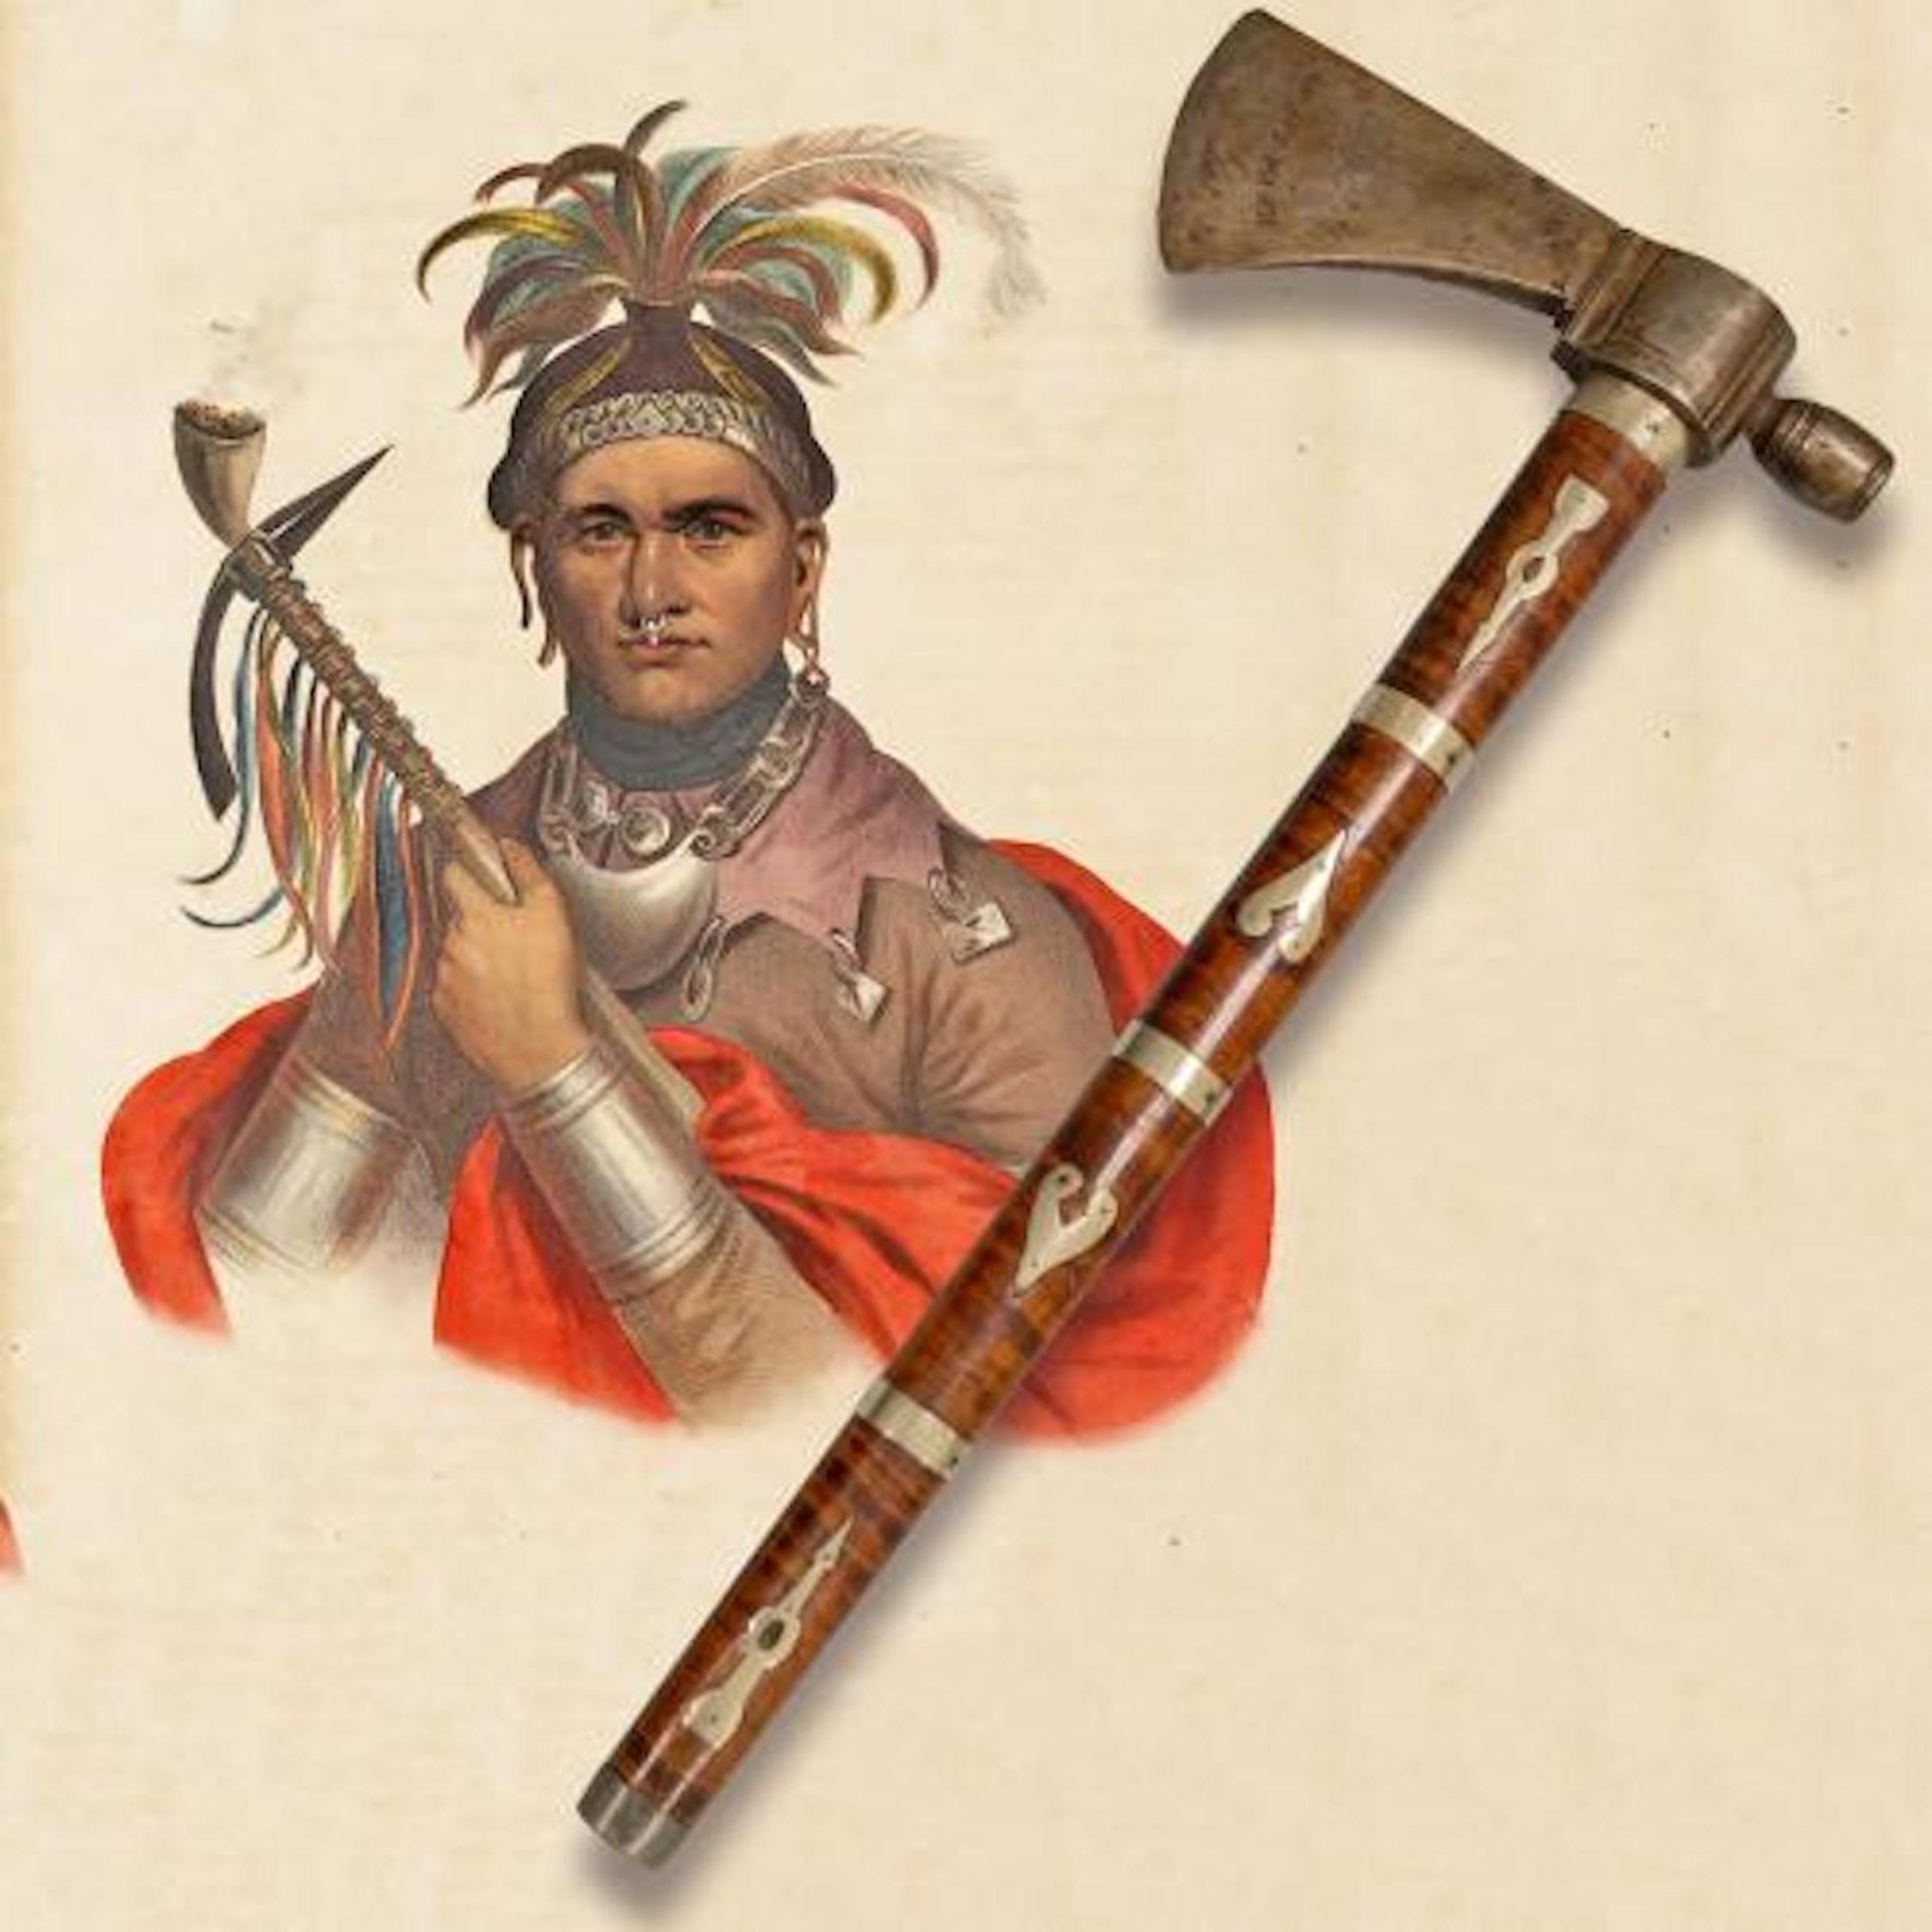 Washington gave Cornplanter a peace pipe tomahawk, shown here resting on a print of the Seneca chief. Image courtesy of the Seneca-Iroquois National Museum.